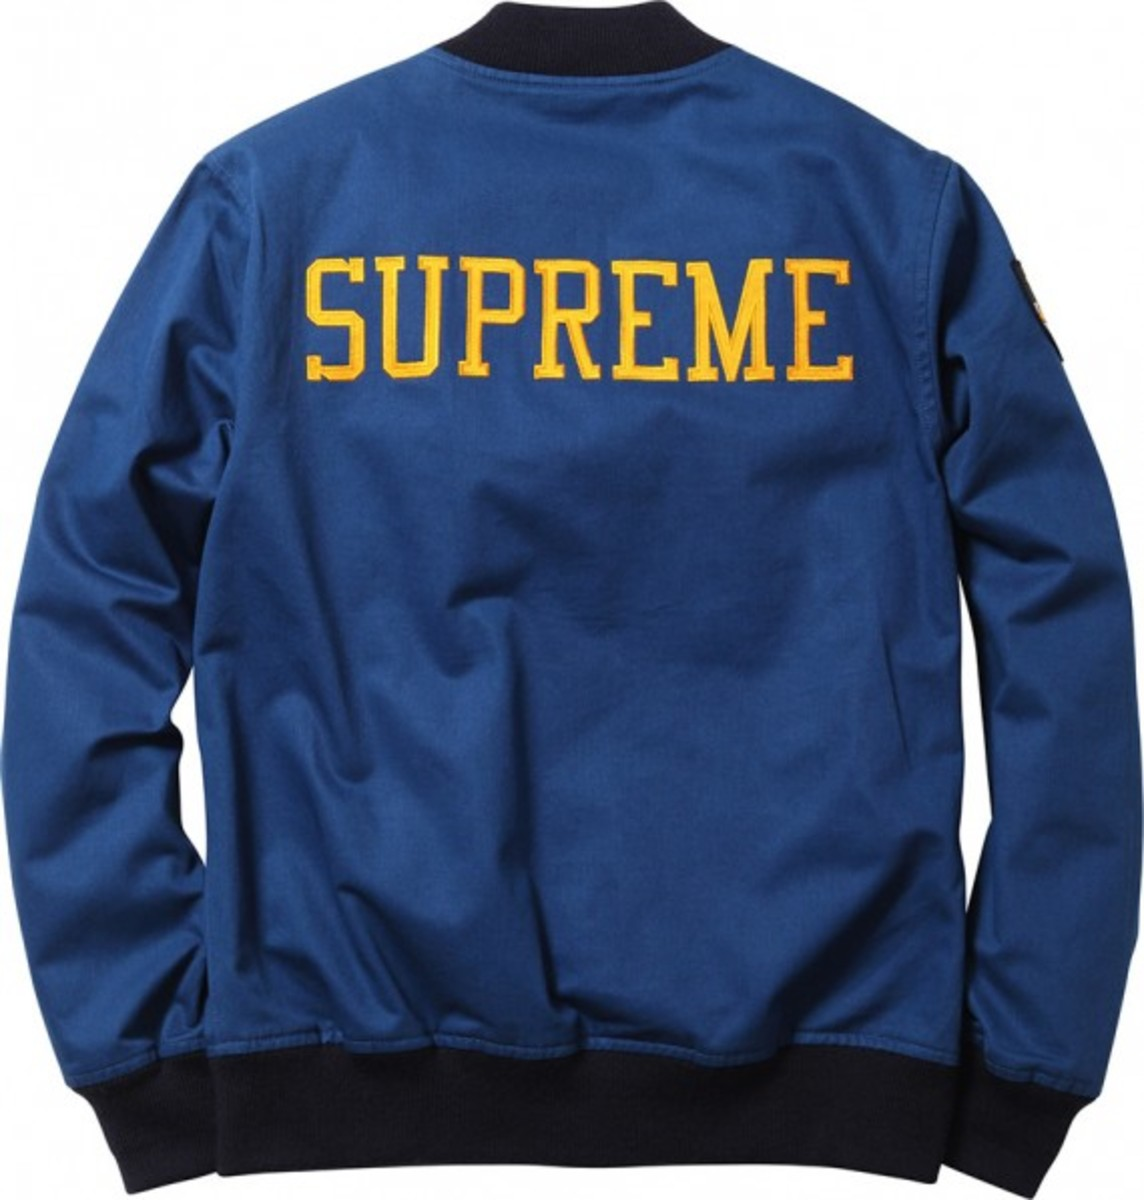 supreme-spring-summer-2013-outerwear-collection-45